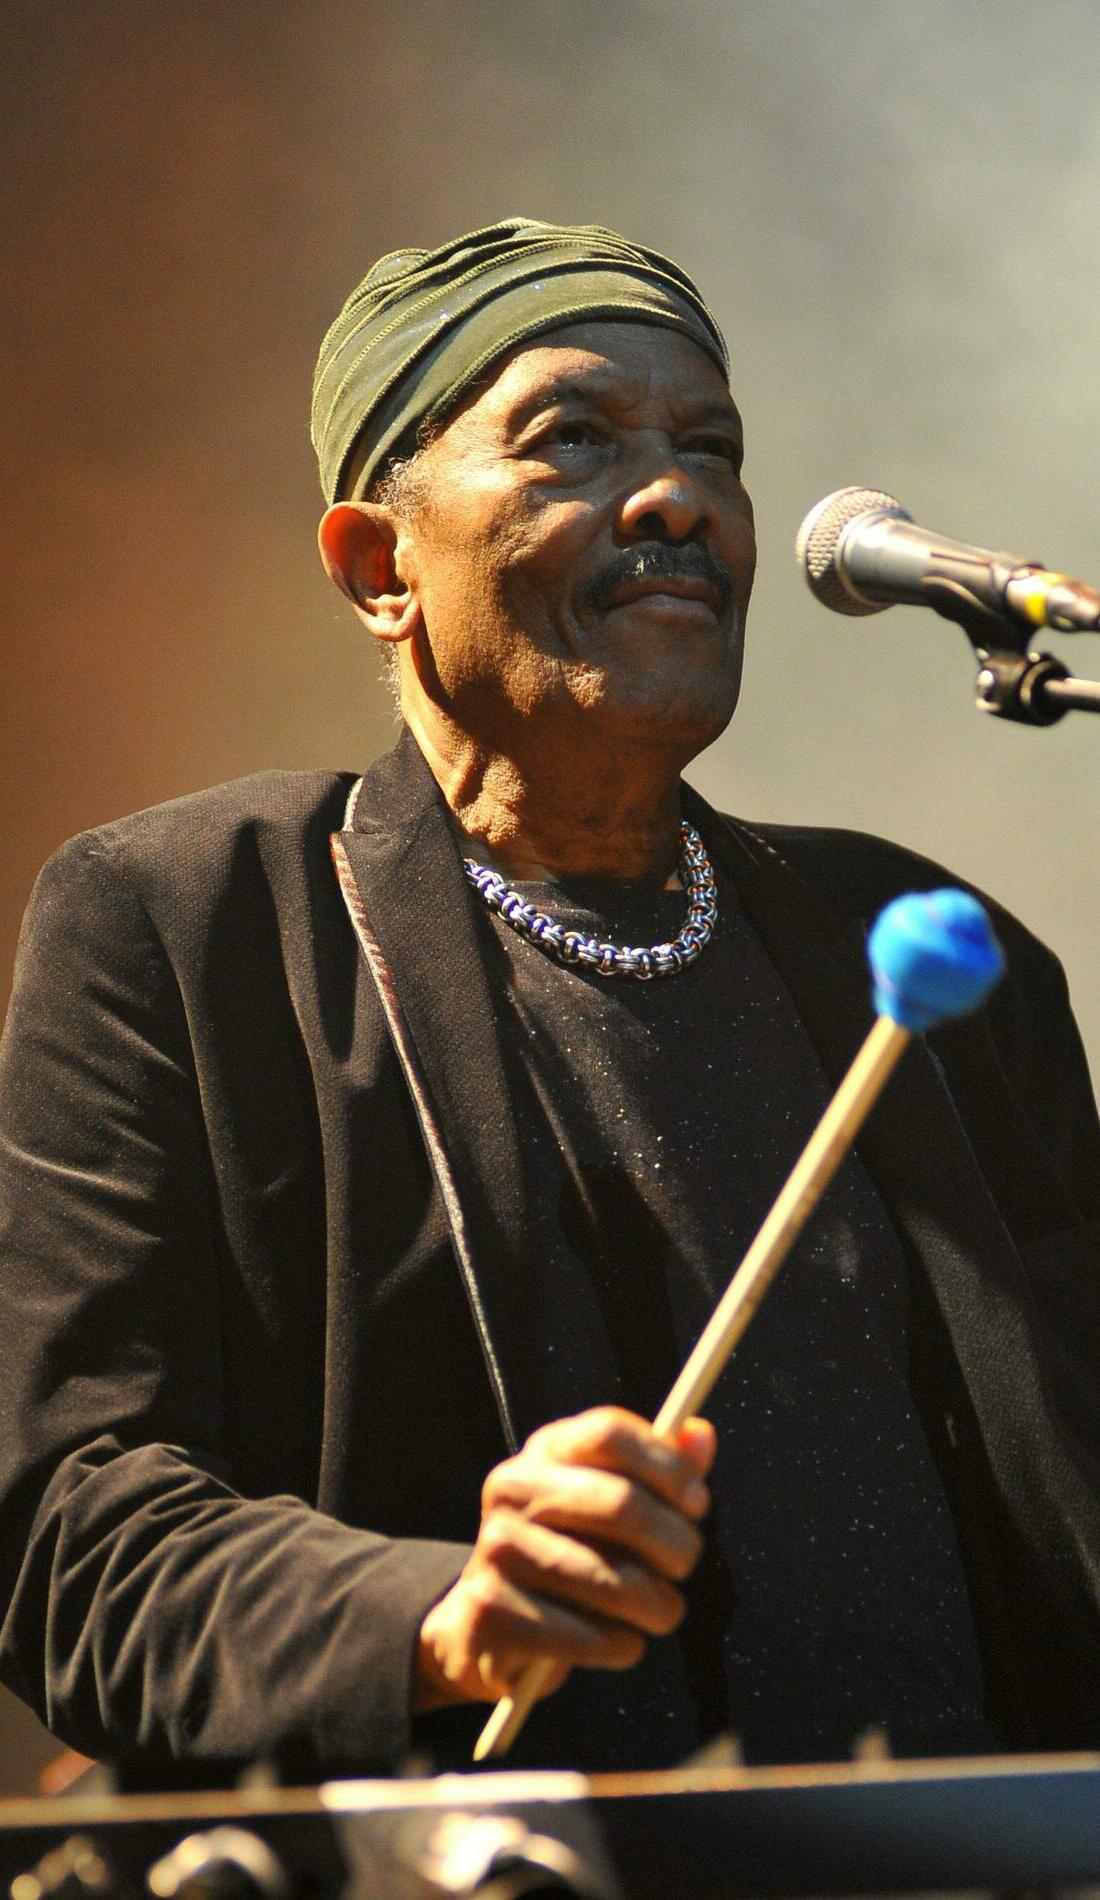 A Roy Ayers live event